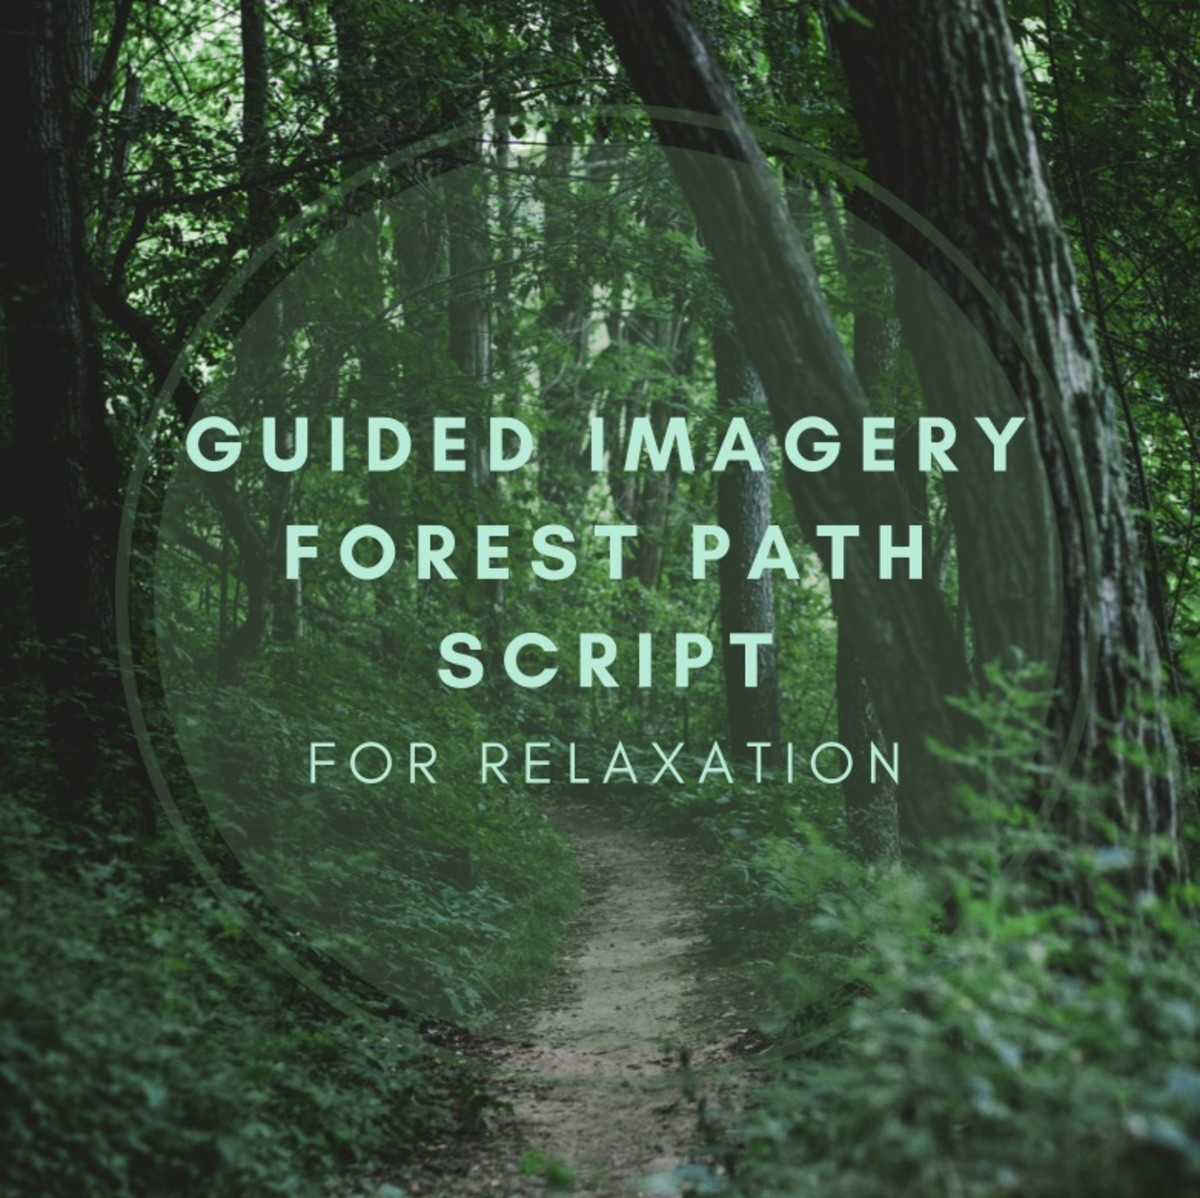 Guided Imagery Forest Path Script for Relaxation